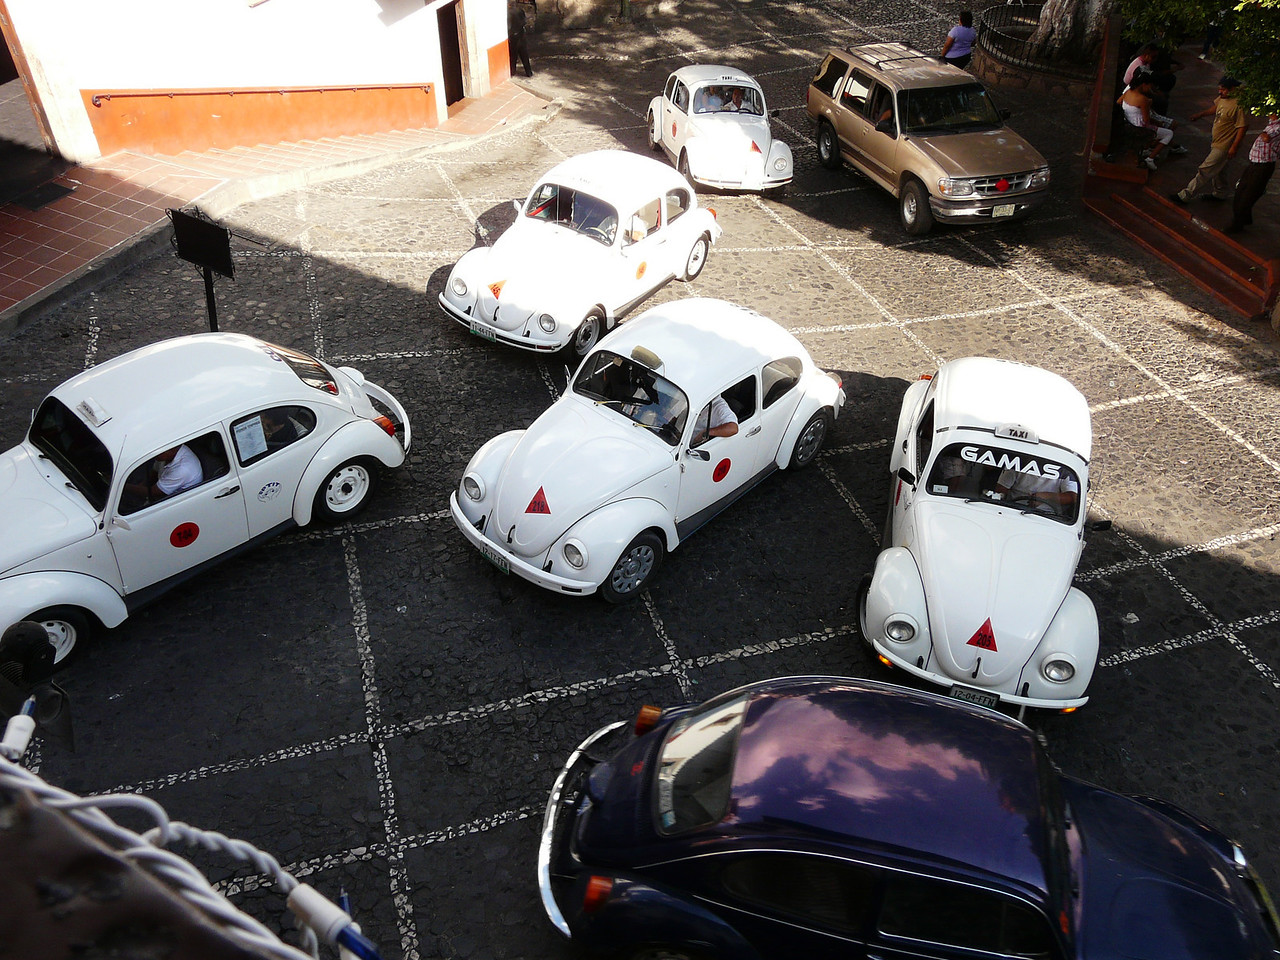 This is not a volkswagon dealership, this is normal traffic, lots of VW taxis, Tasco, Mexico